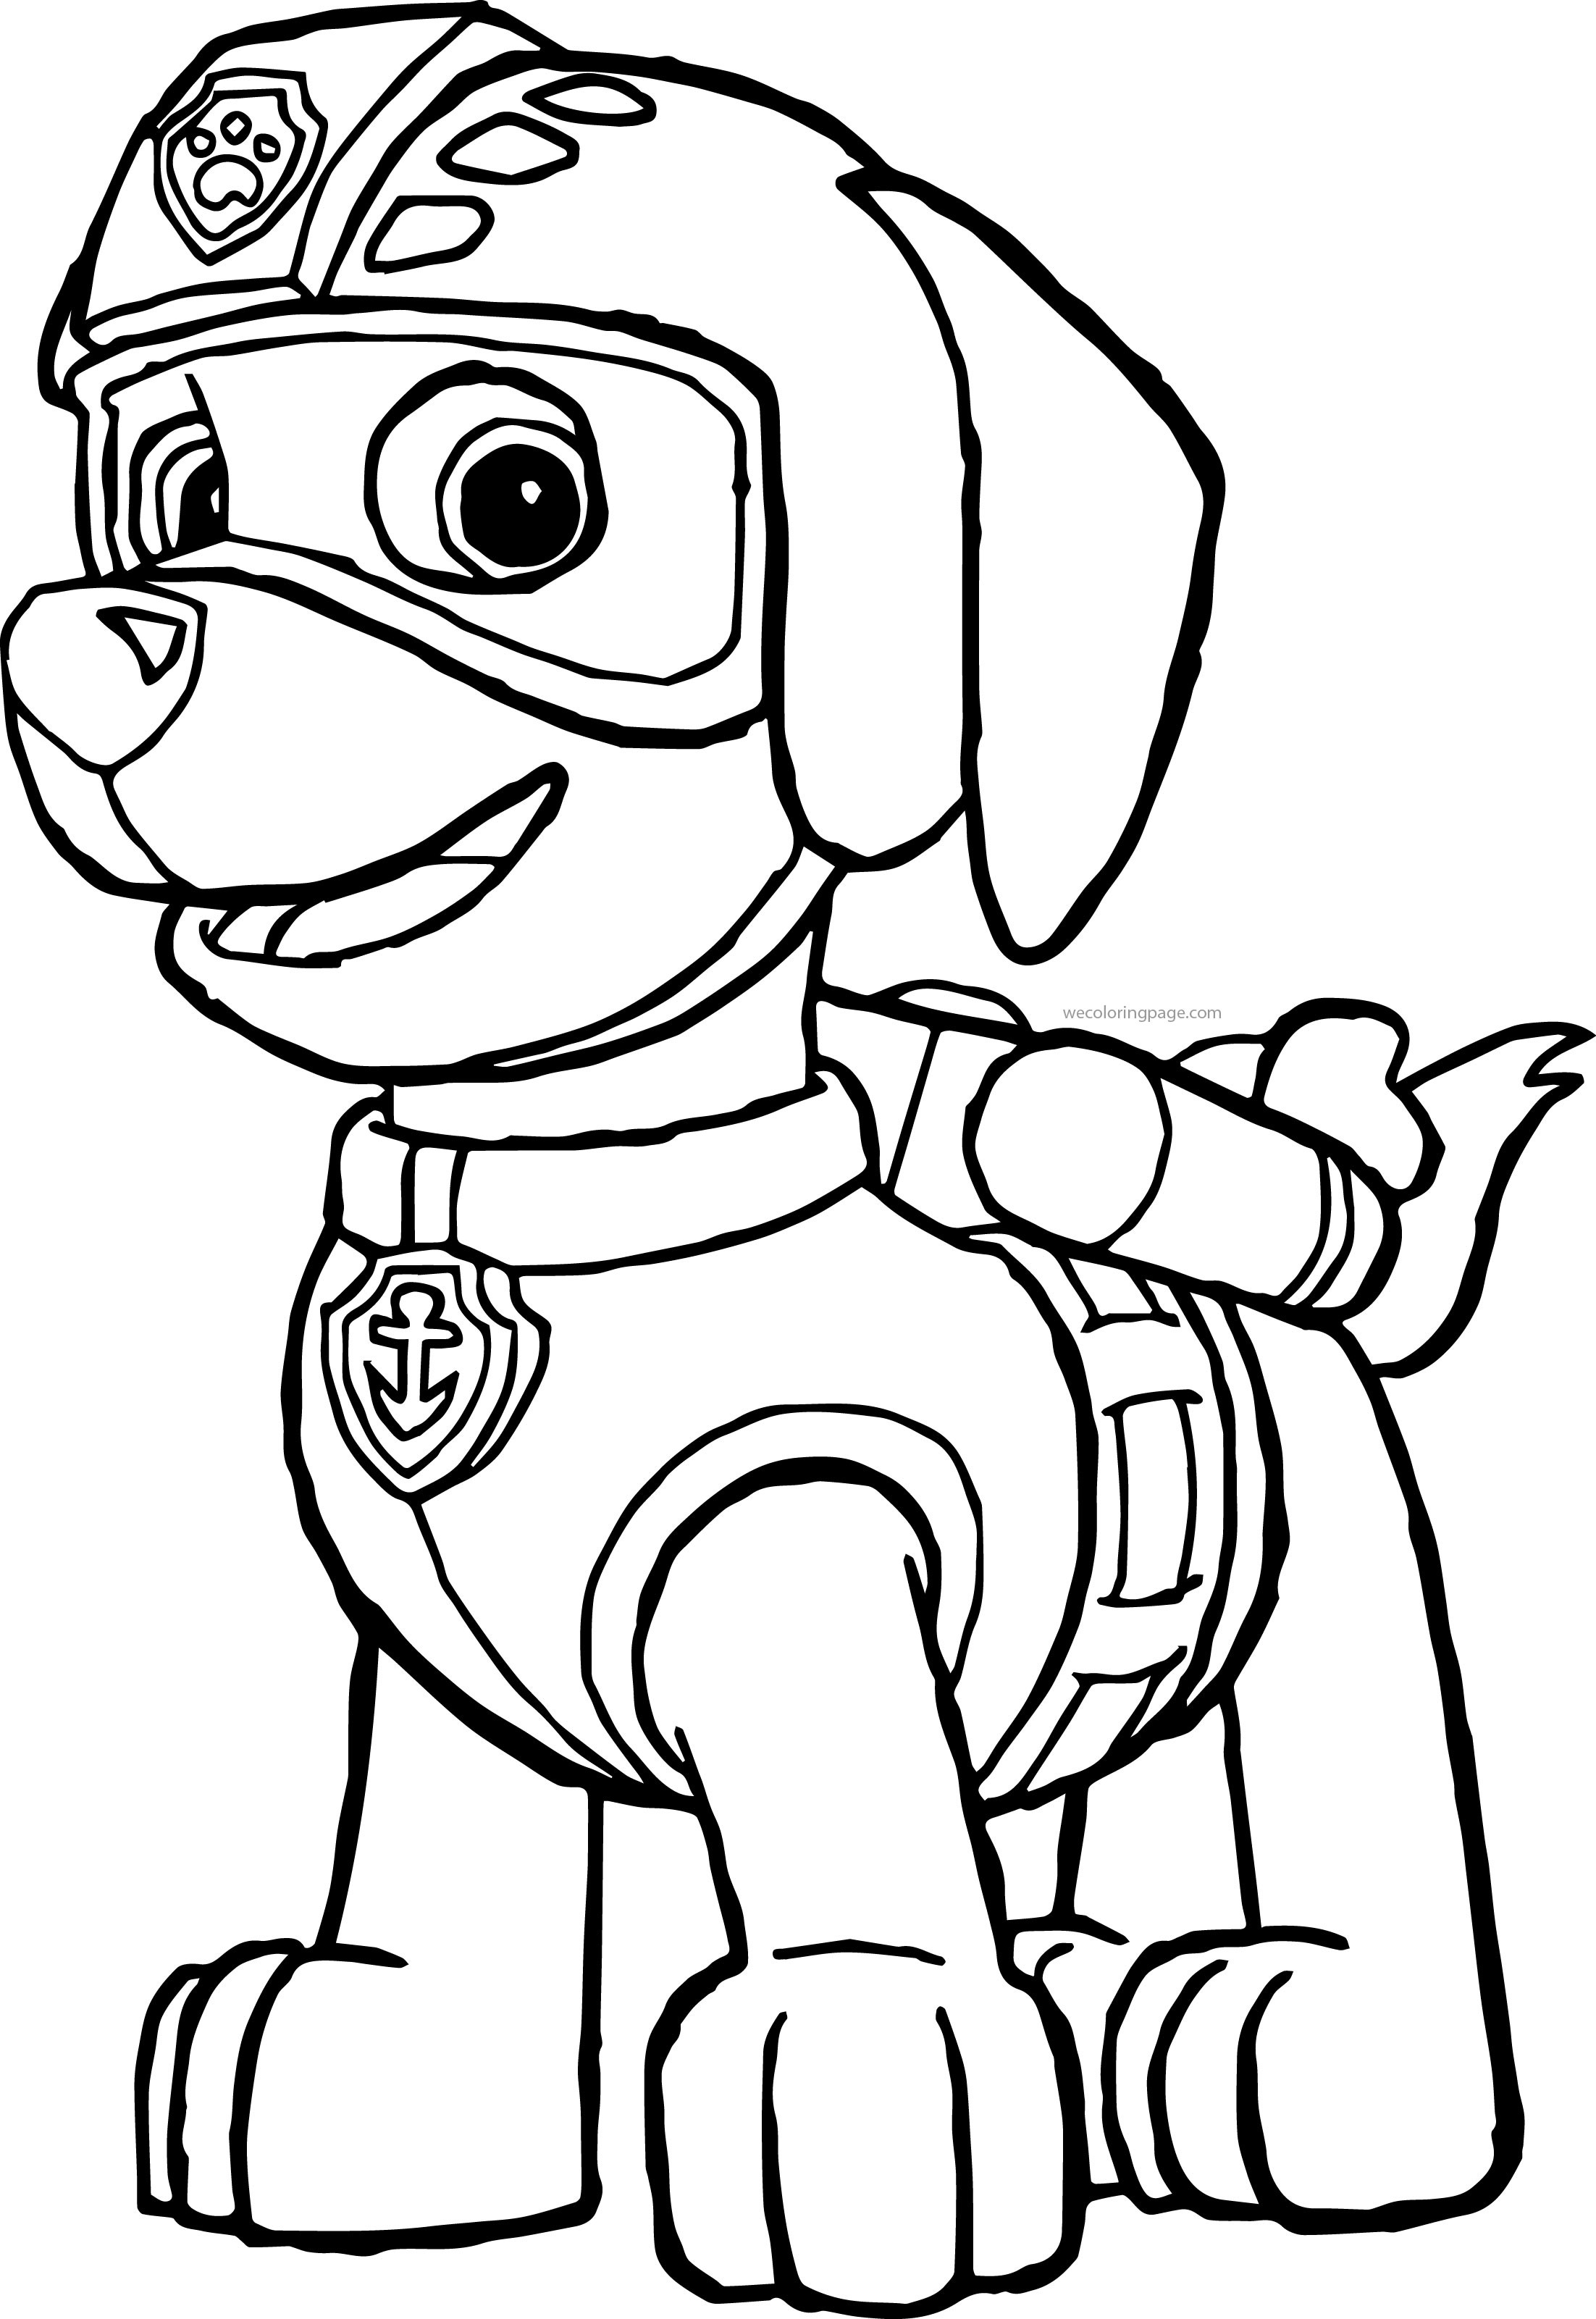 2204x3202 Free Paw Patrol Coloring Pages Beautiful Paw Patrol Coloring Pages